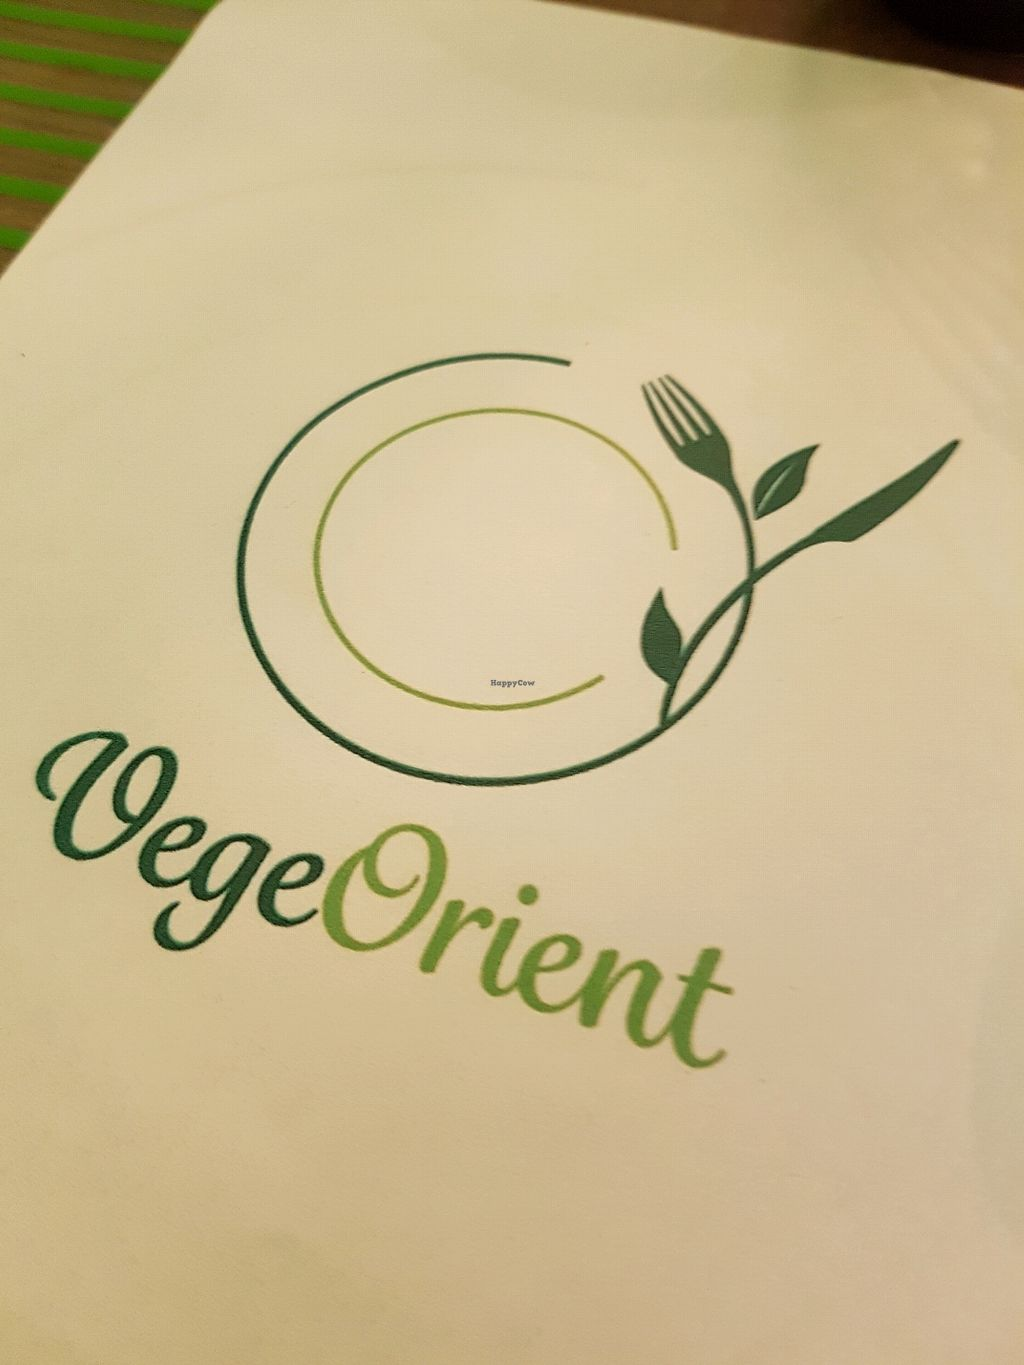 """Photo of VegeOrient  by <a href=""""/members/profile/HarleyColes"""">HarleyColes</a> <br/>VegeOrient <br/> December 28, 2017  - <a href='/contact/abuse/image/61214/340225'>Report</a>"""